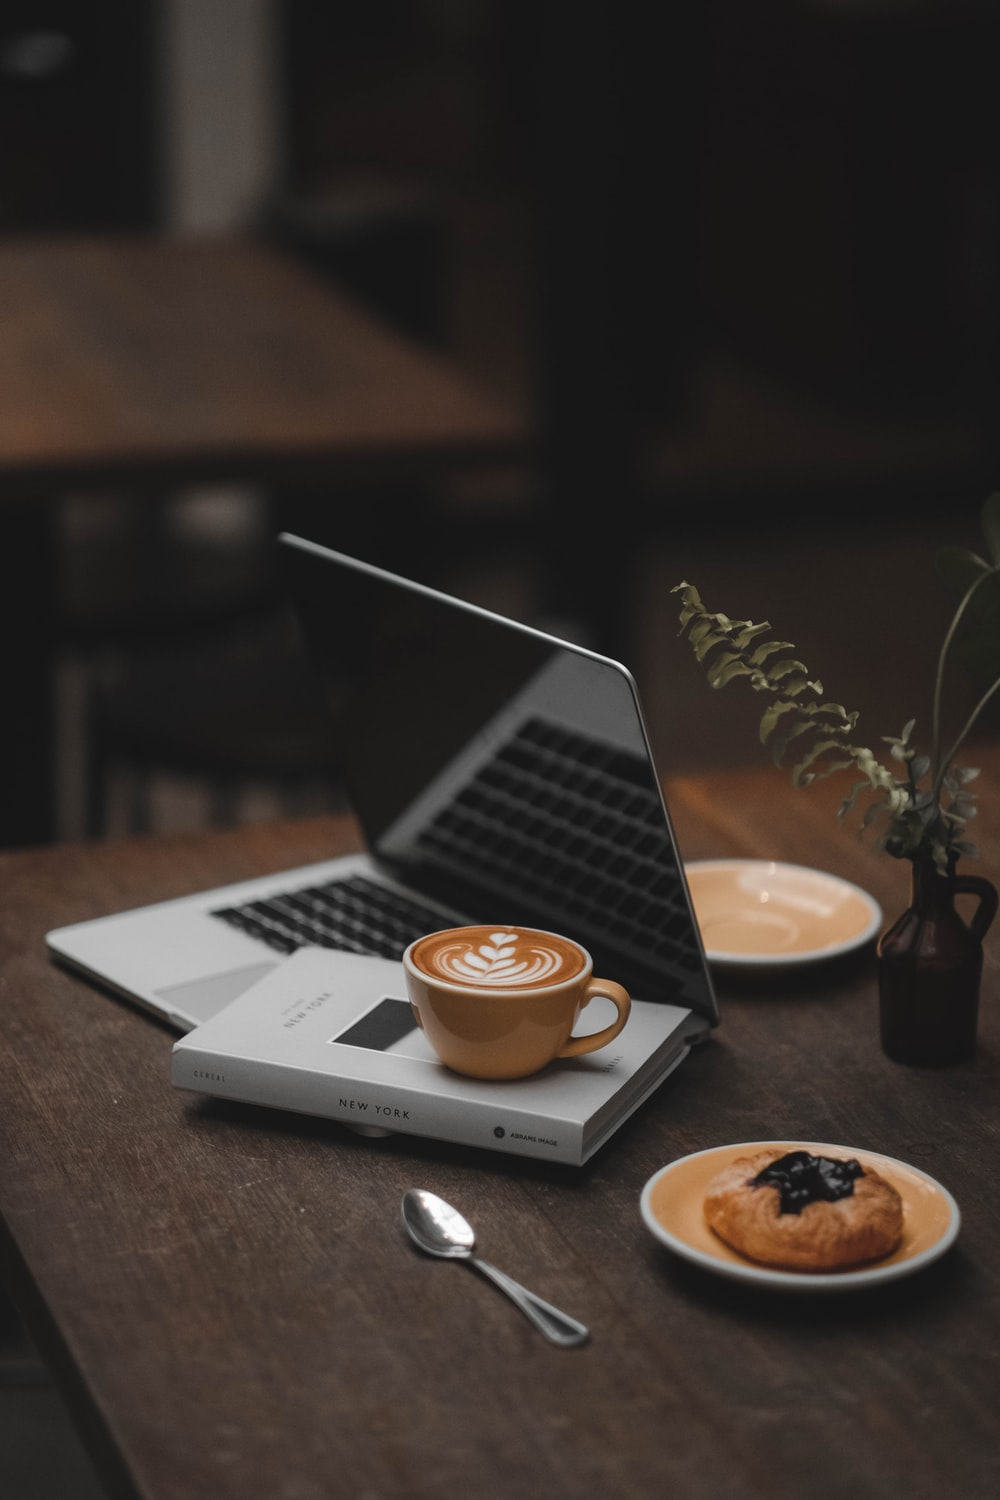 laptop displaying black screen beside latte art mug on book